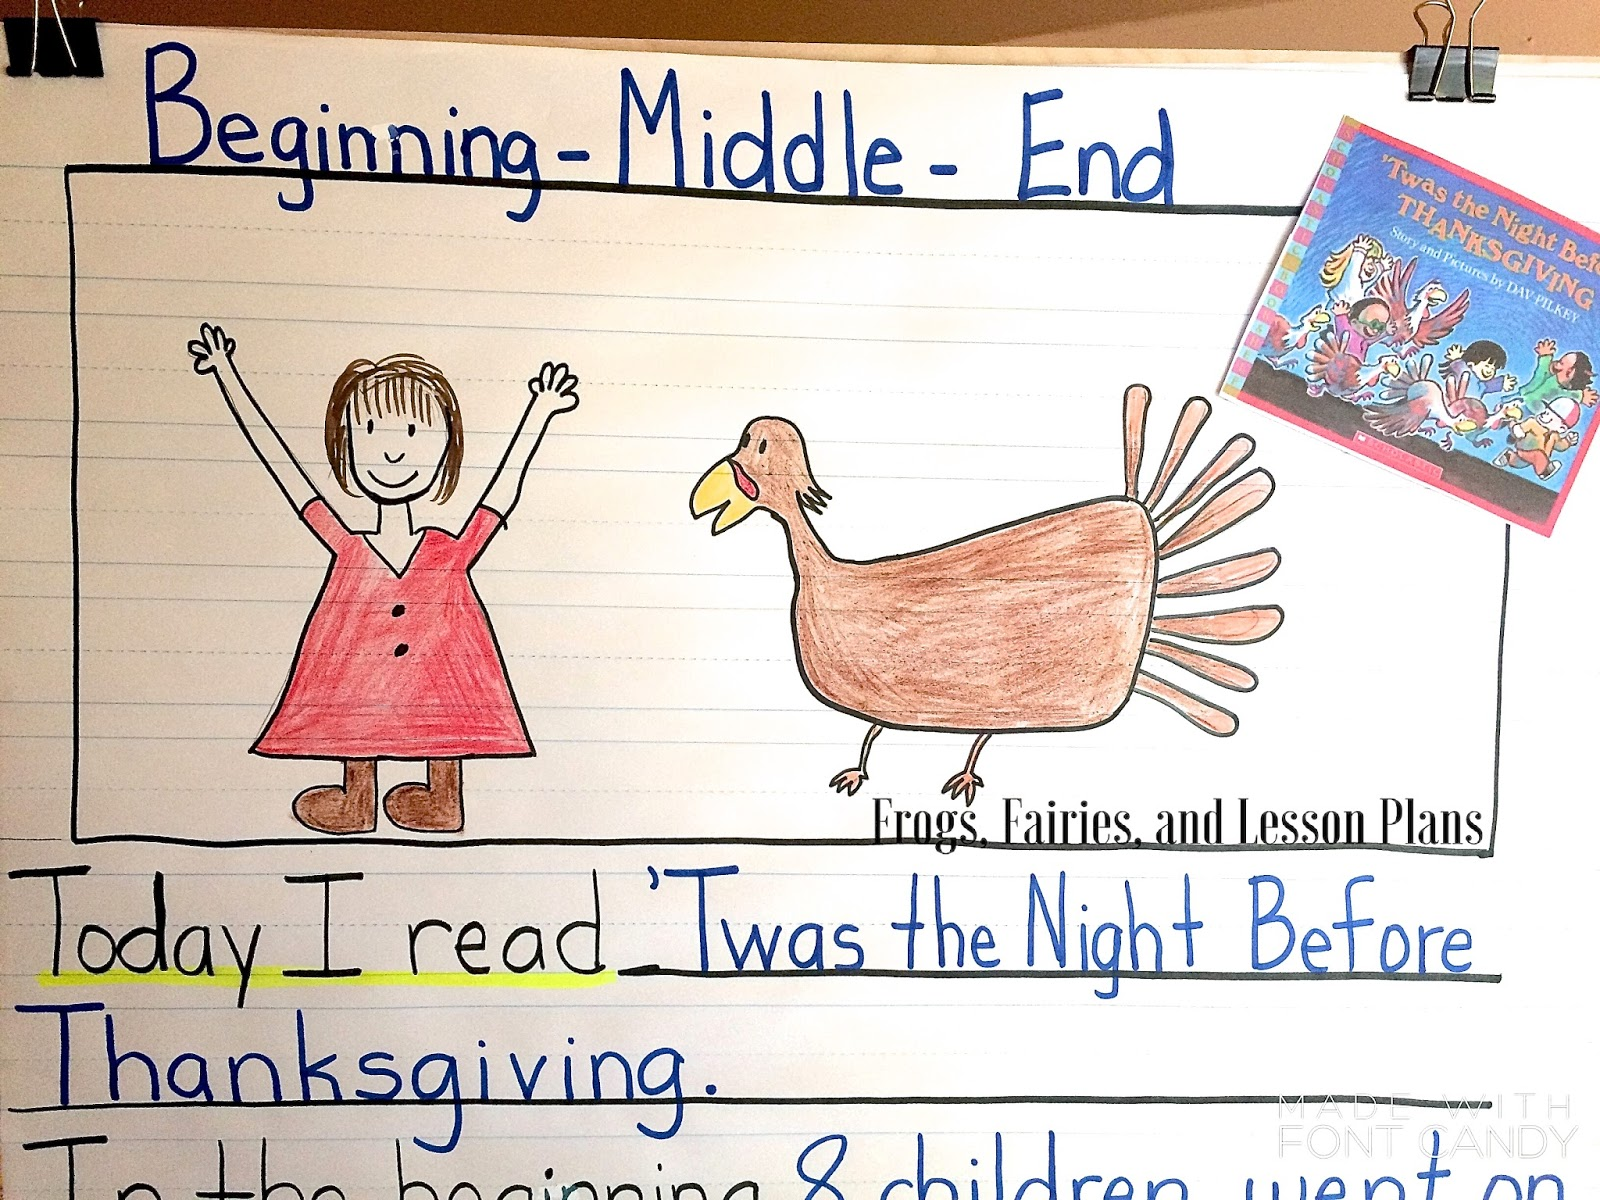 Frogs Fairies And Lesson Plans 5 Tips For Teaching A Beginning Middle End Reading Lesson